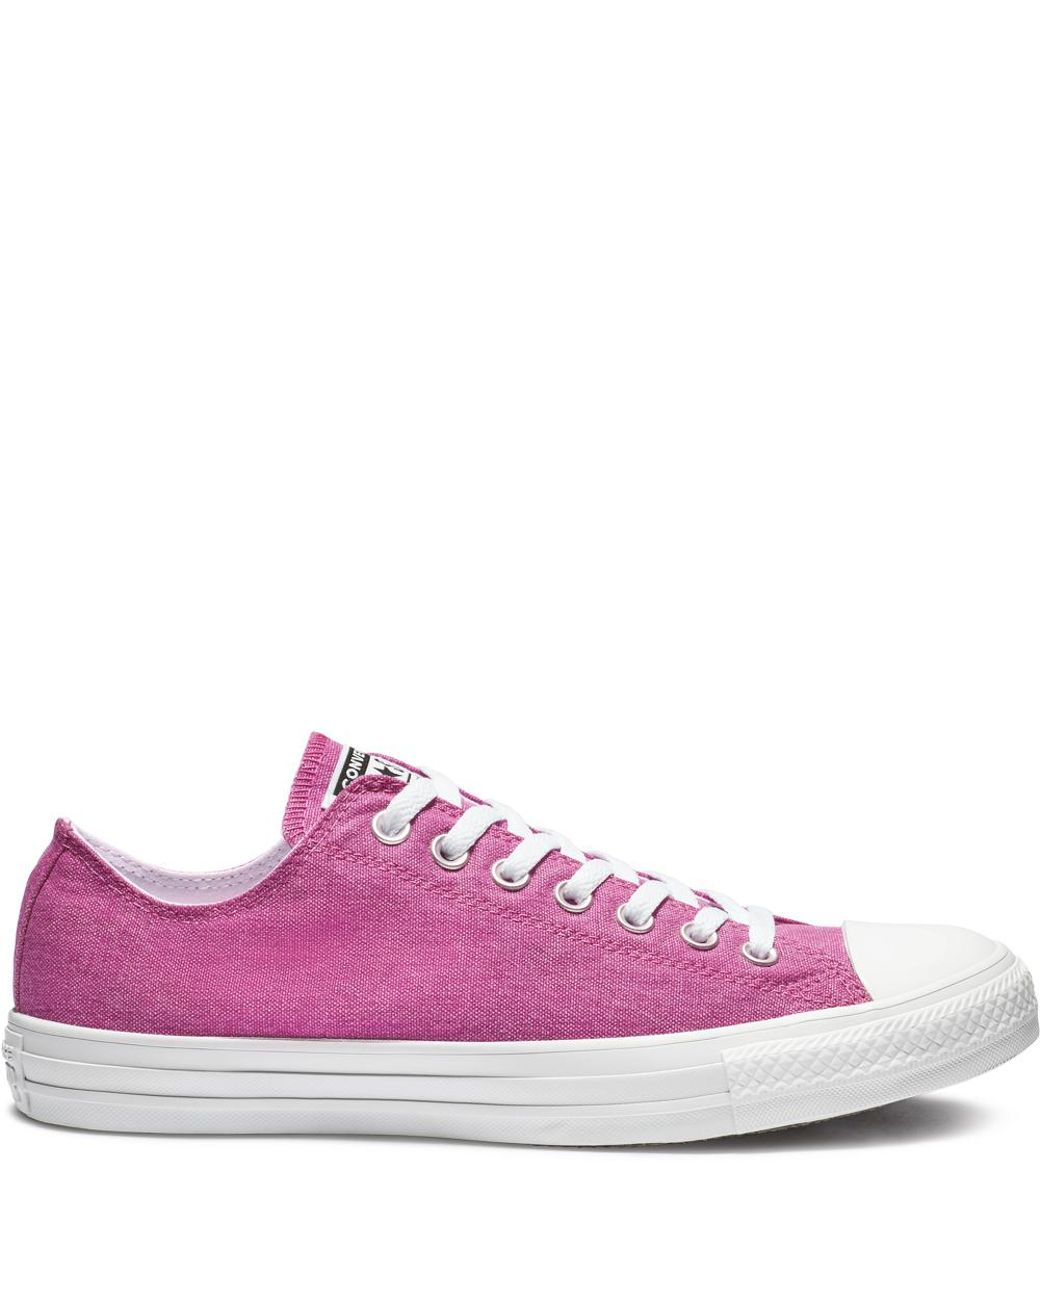 0ccdb79ed2bd Converse Chuck Taylor All Star Court Fade Low Top for Men - Lyst